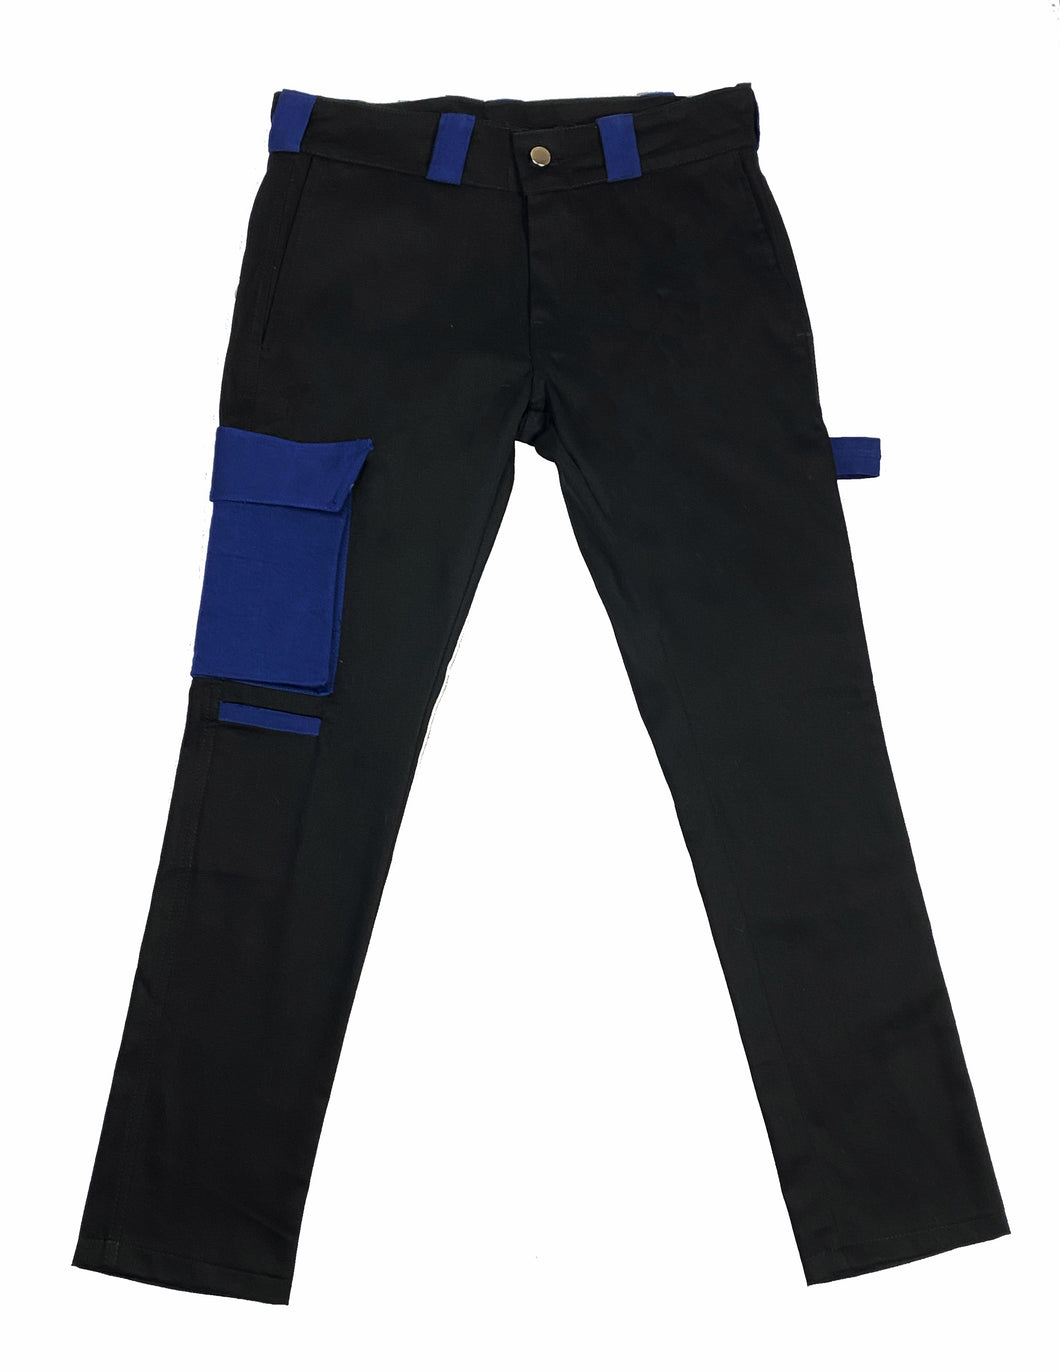 Brushed Twill Cargos in black/royal blue